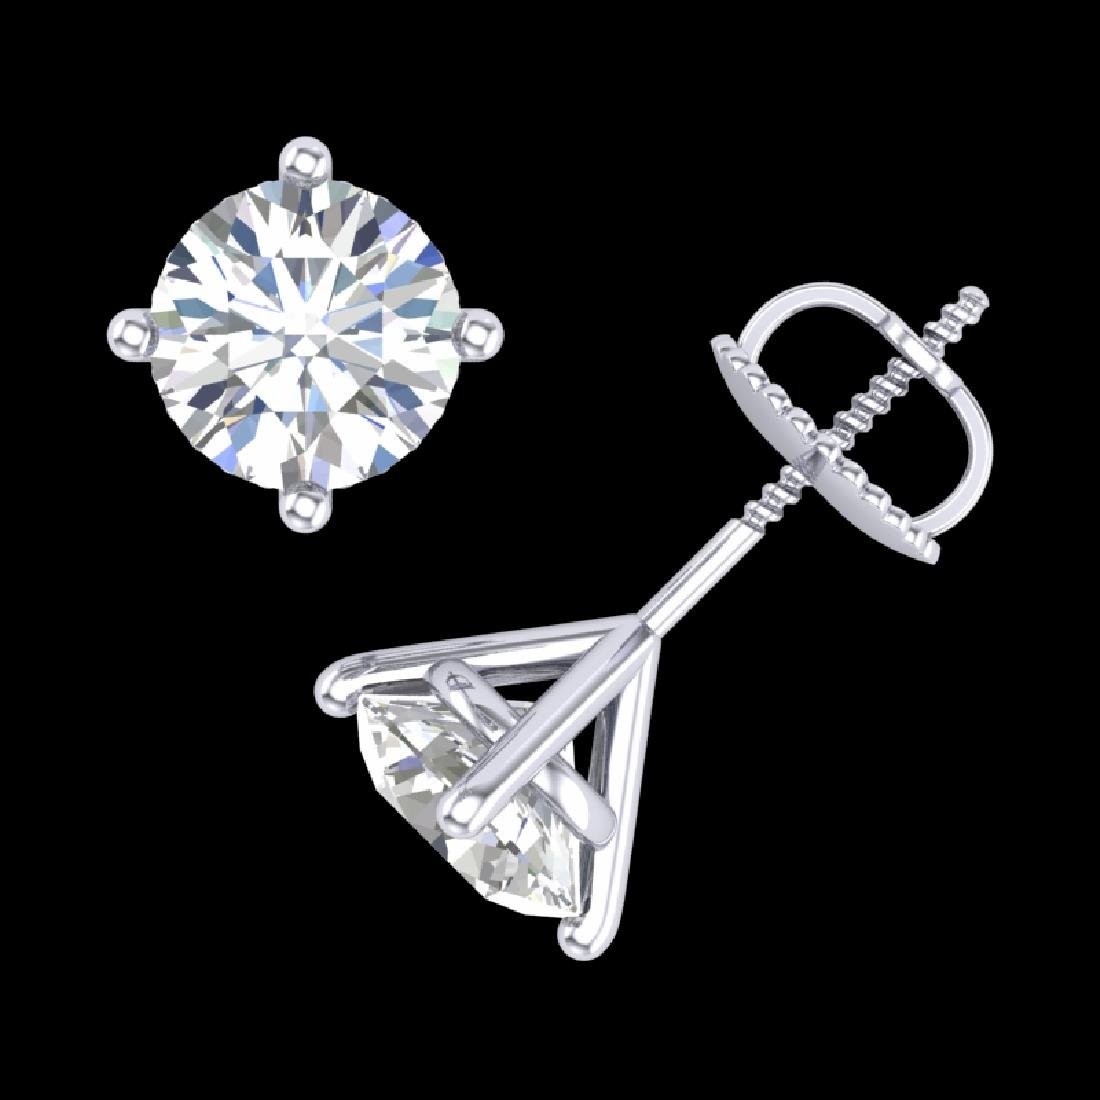 2 CTW VS/SI Diamond Solitaire Art Deco Stud Earrings - 3